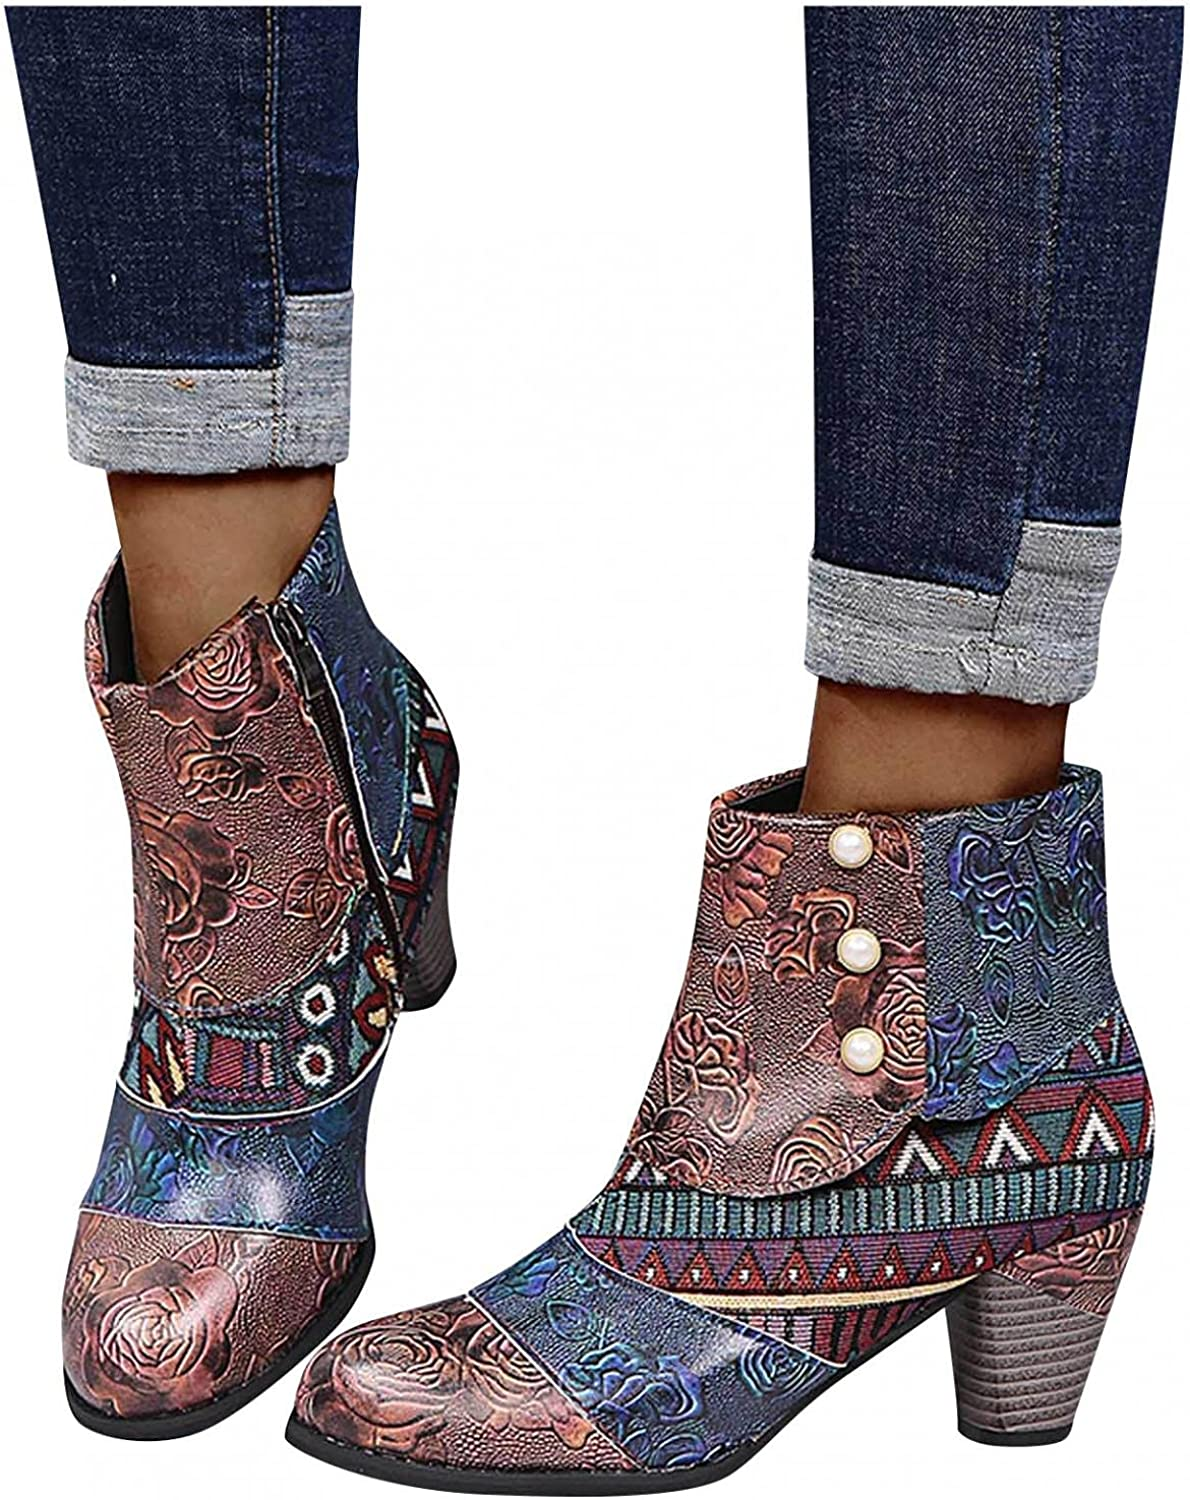 Boots for Women with Heel Vintage Printed Bohemia Ankle Short Booties Platform Boots Winter Casual Shoes Riding Boots